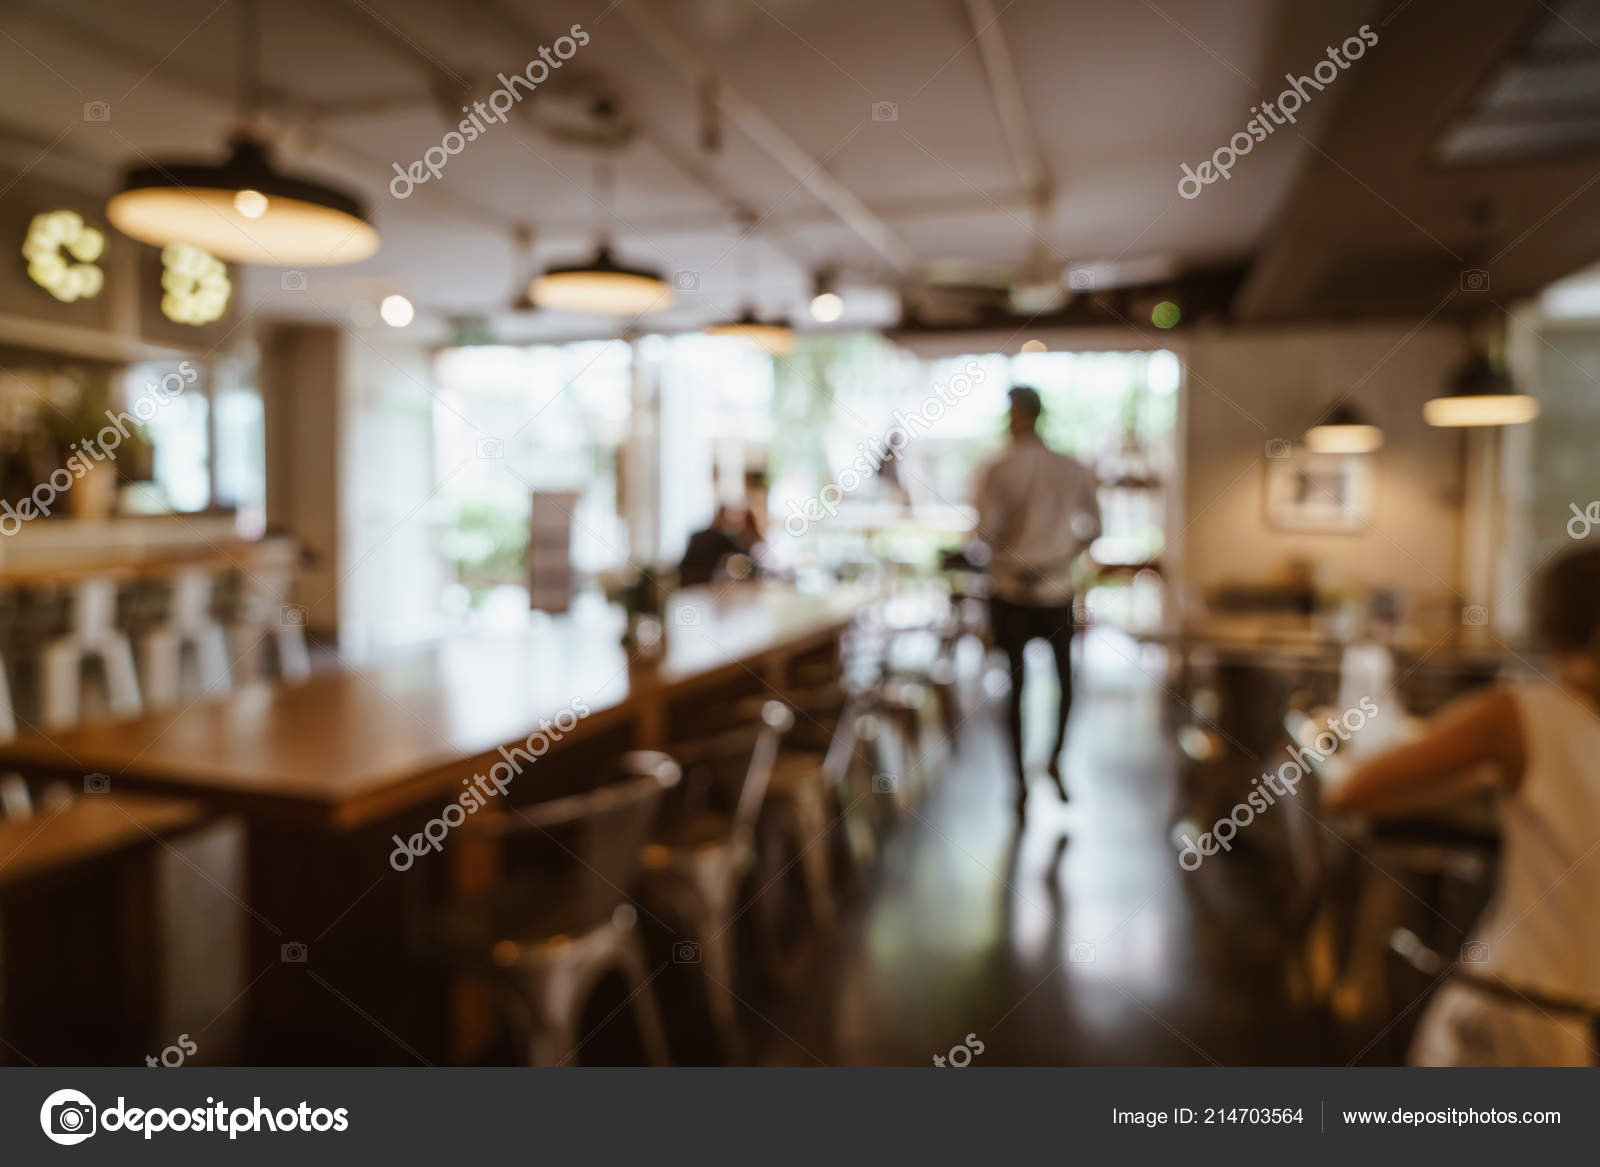 Abstract Blur Defocused Cafe Restaurant Background Vintage Filter Stock Photo C Topntp 214703564